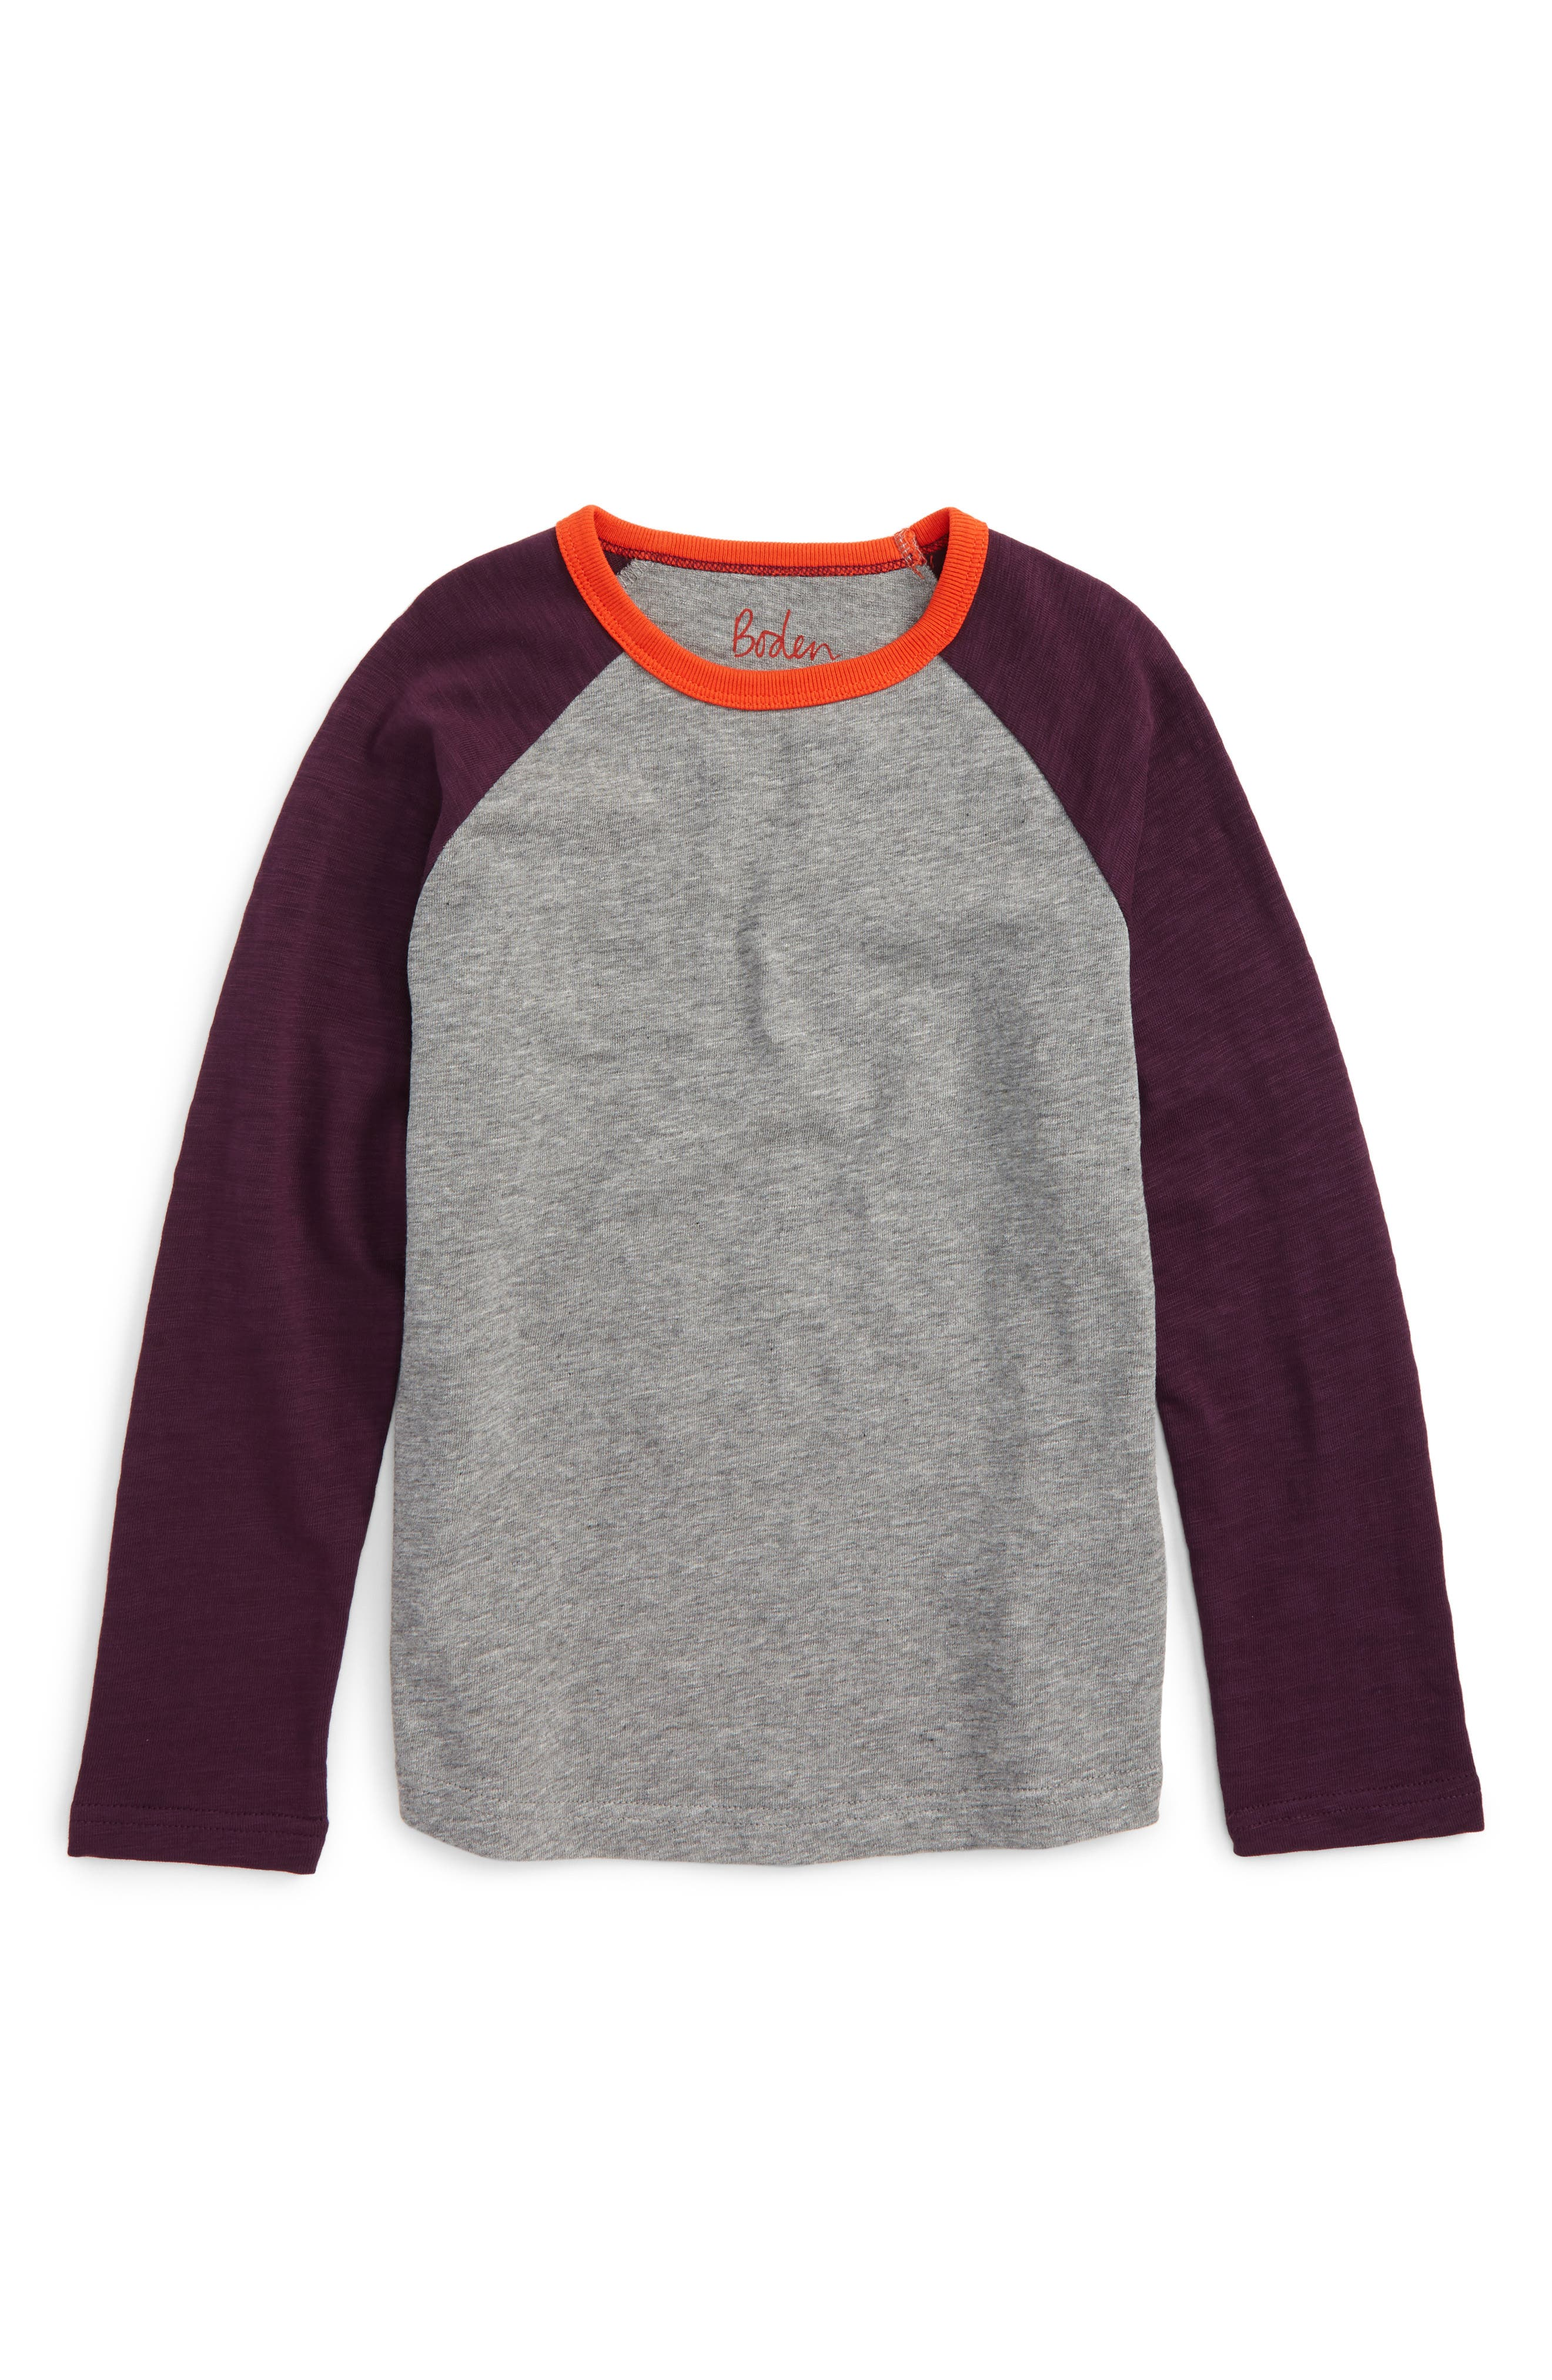 Raglan Sleeve T-Shirt,                         Main,                         color, 062